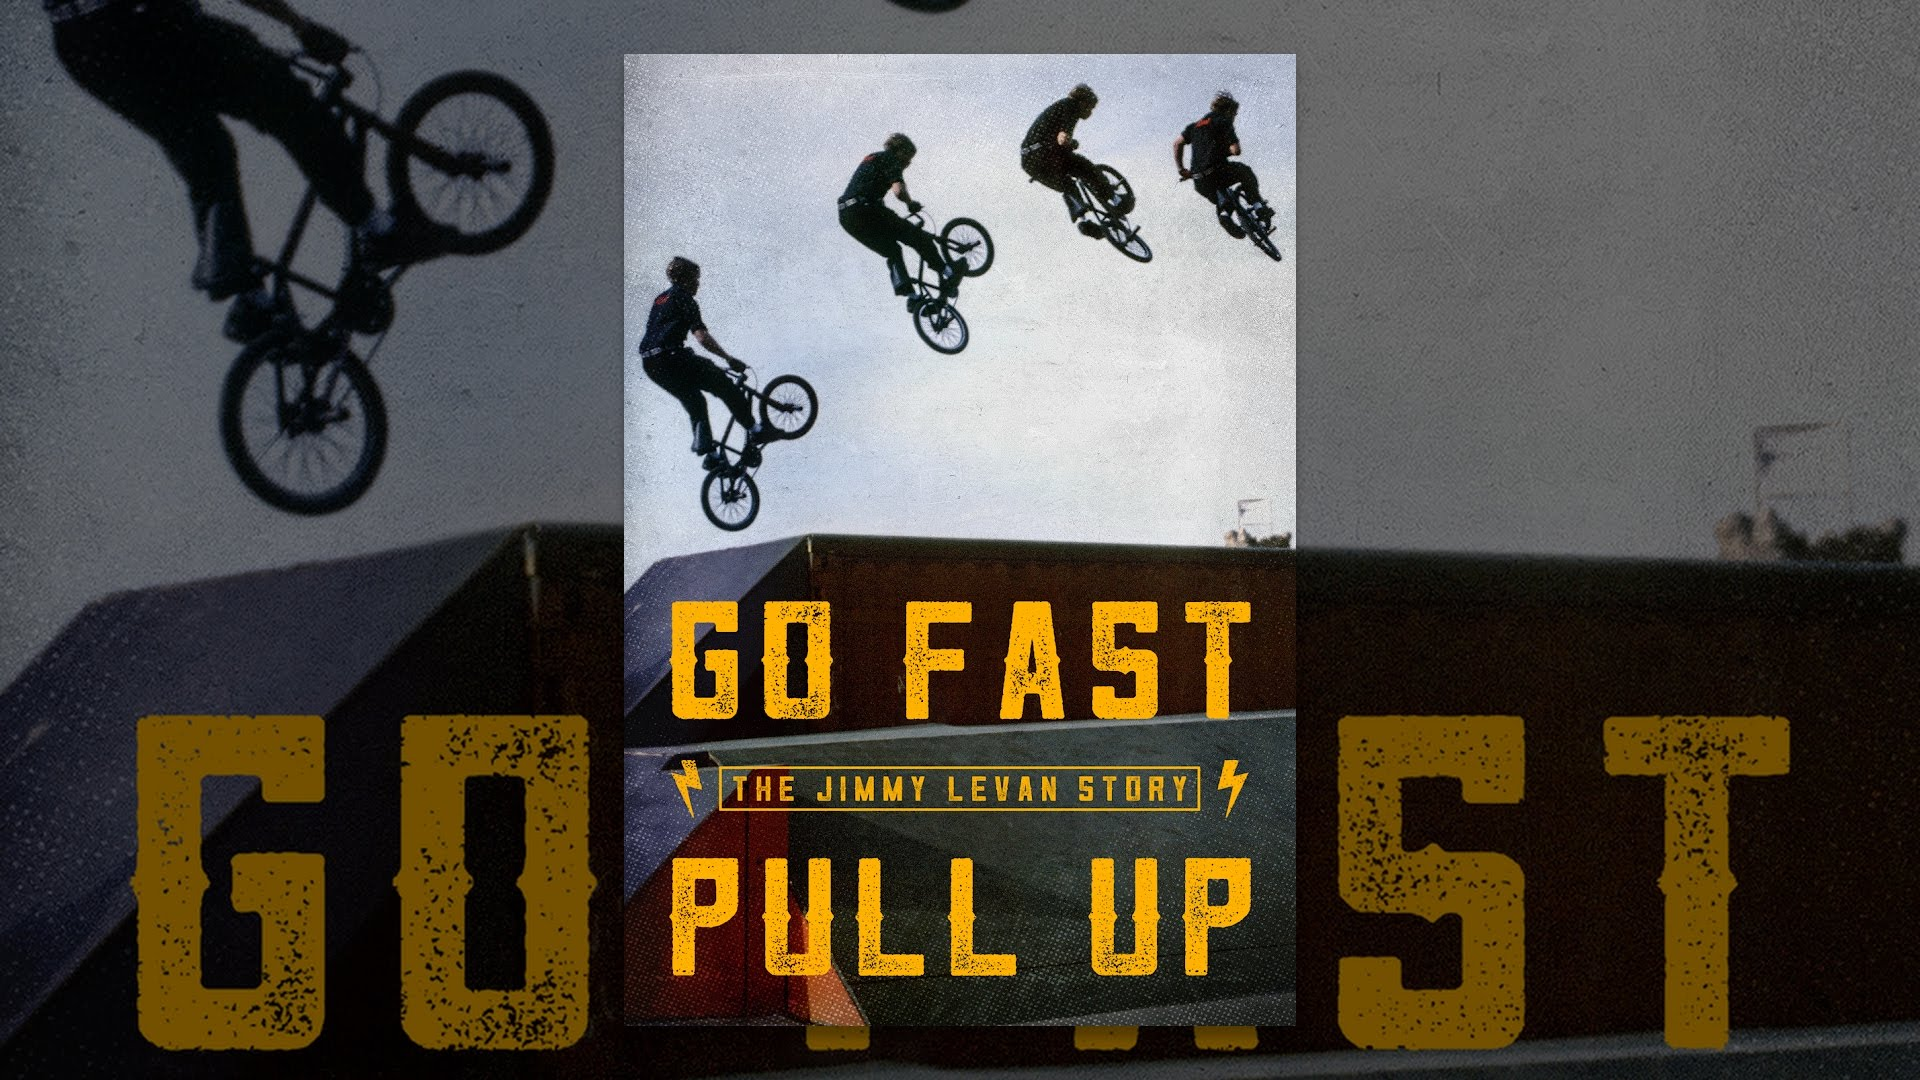 [VIDEO] - Go Fast Pull Up: The Jimmy LeVan Story 1